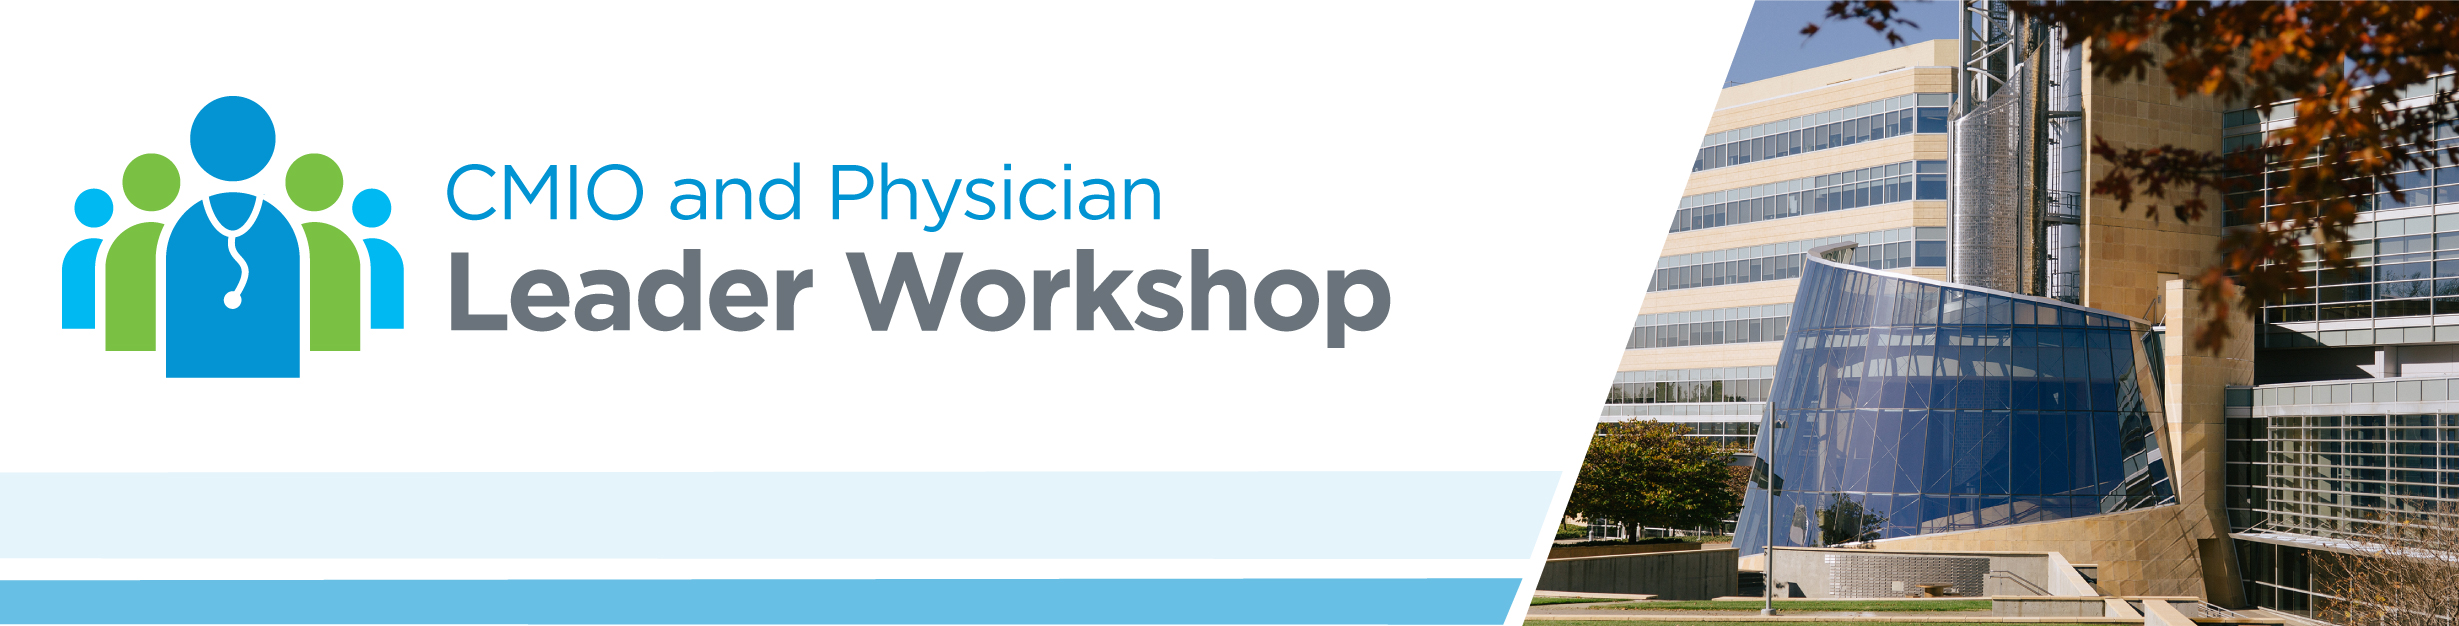 CMIO & Physician Leader Workshop 2018 - Spring